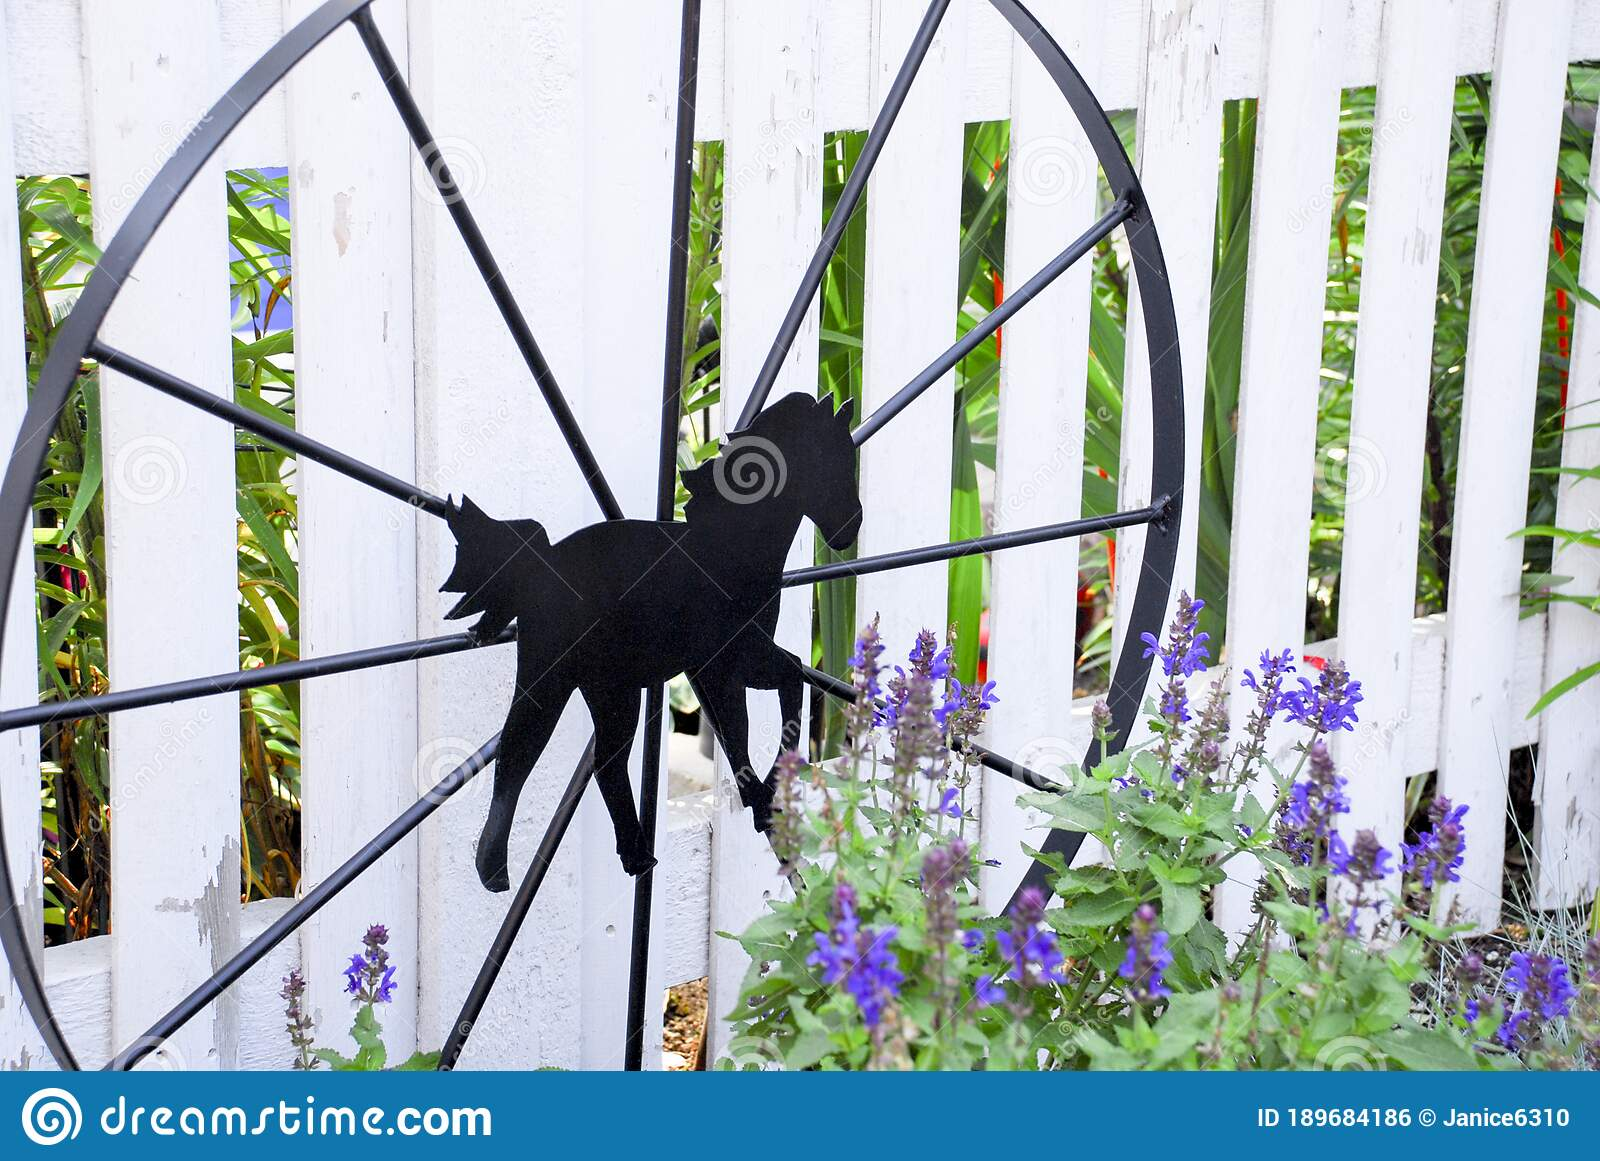 Black Rod Iron Wagon Wheel With A Horse In The Center Stock Photo Image Of Flower Fence 189684186